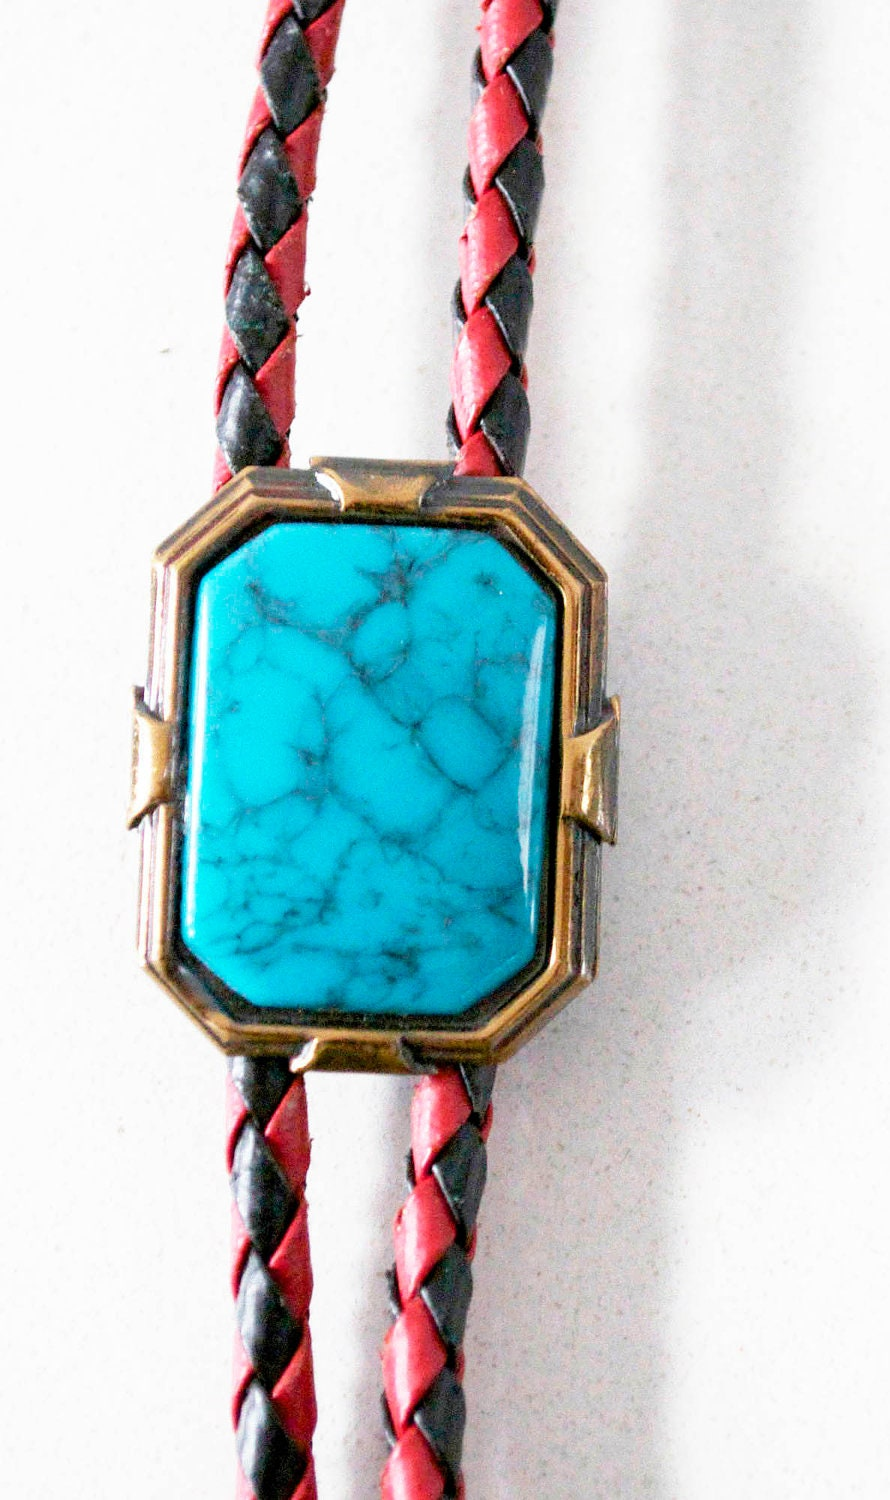 RETRO BOLO (Bootlace) Tie - TURQUOISE in gold setting, red & black